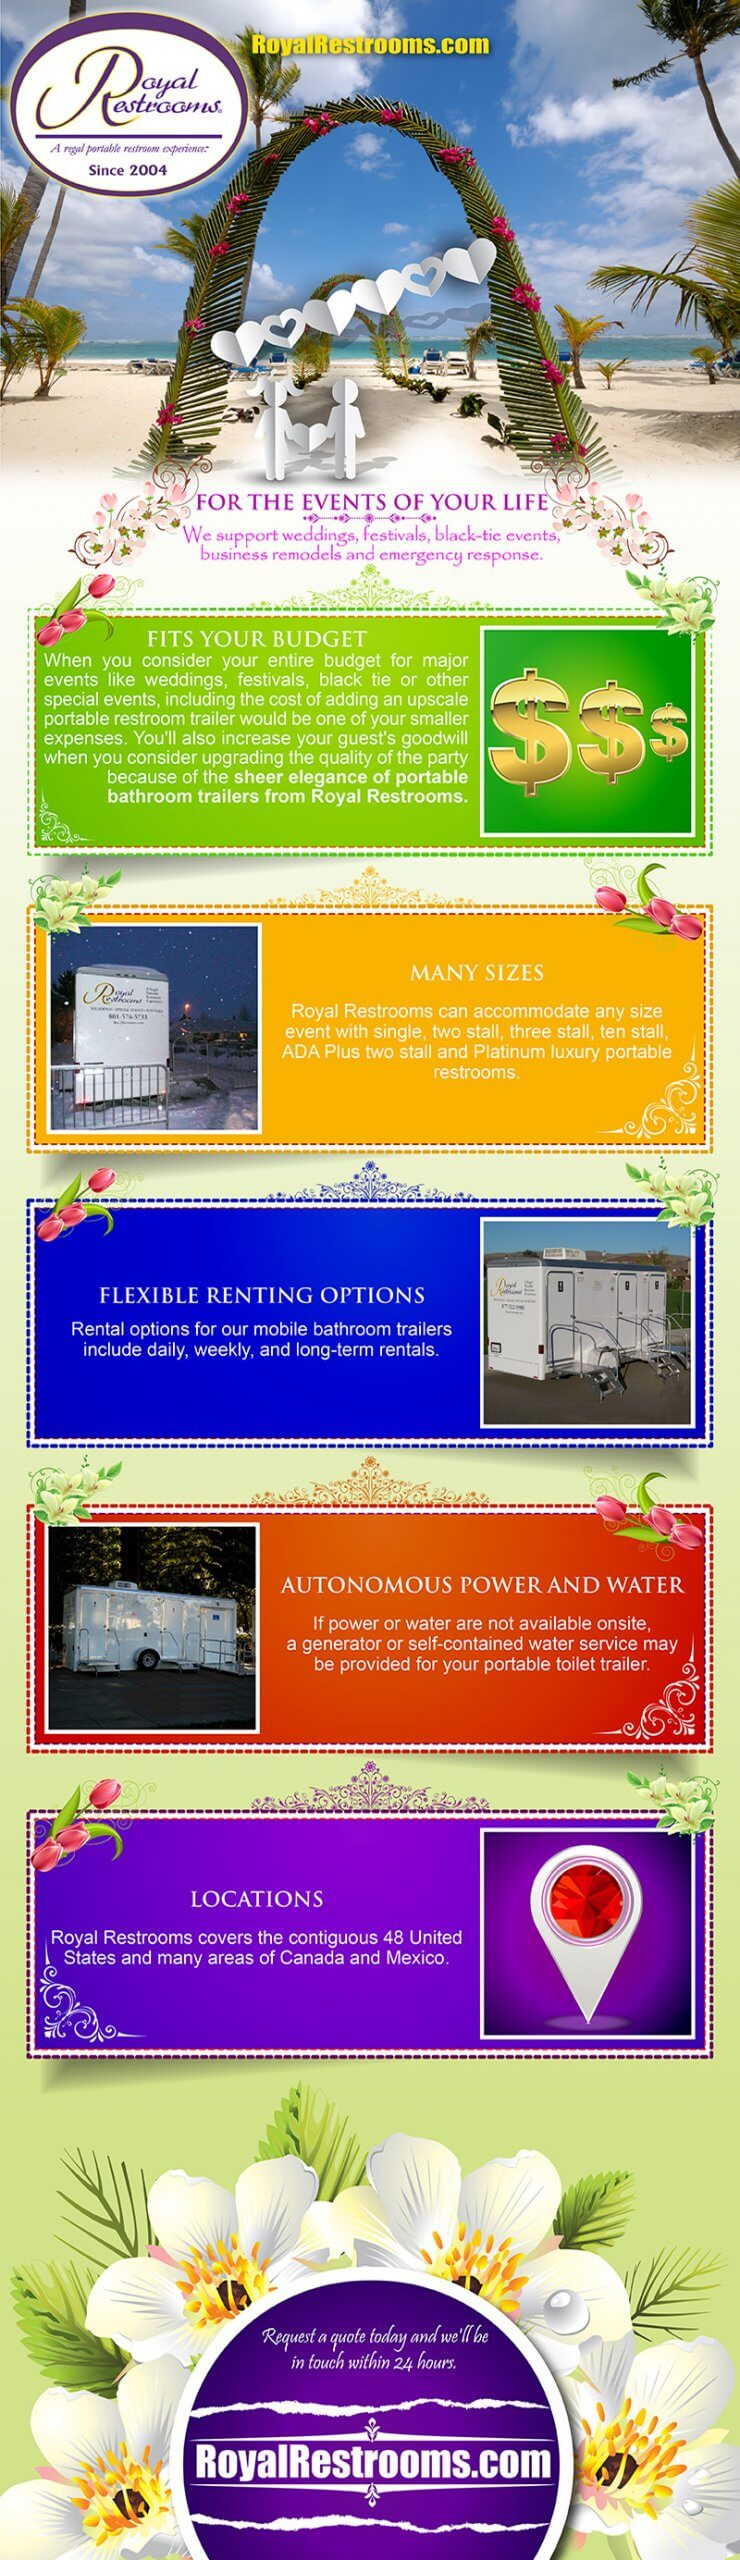 Luxury Portable Restrooms by Royal Restrooms Infographic